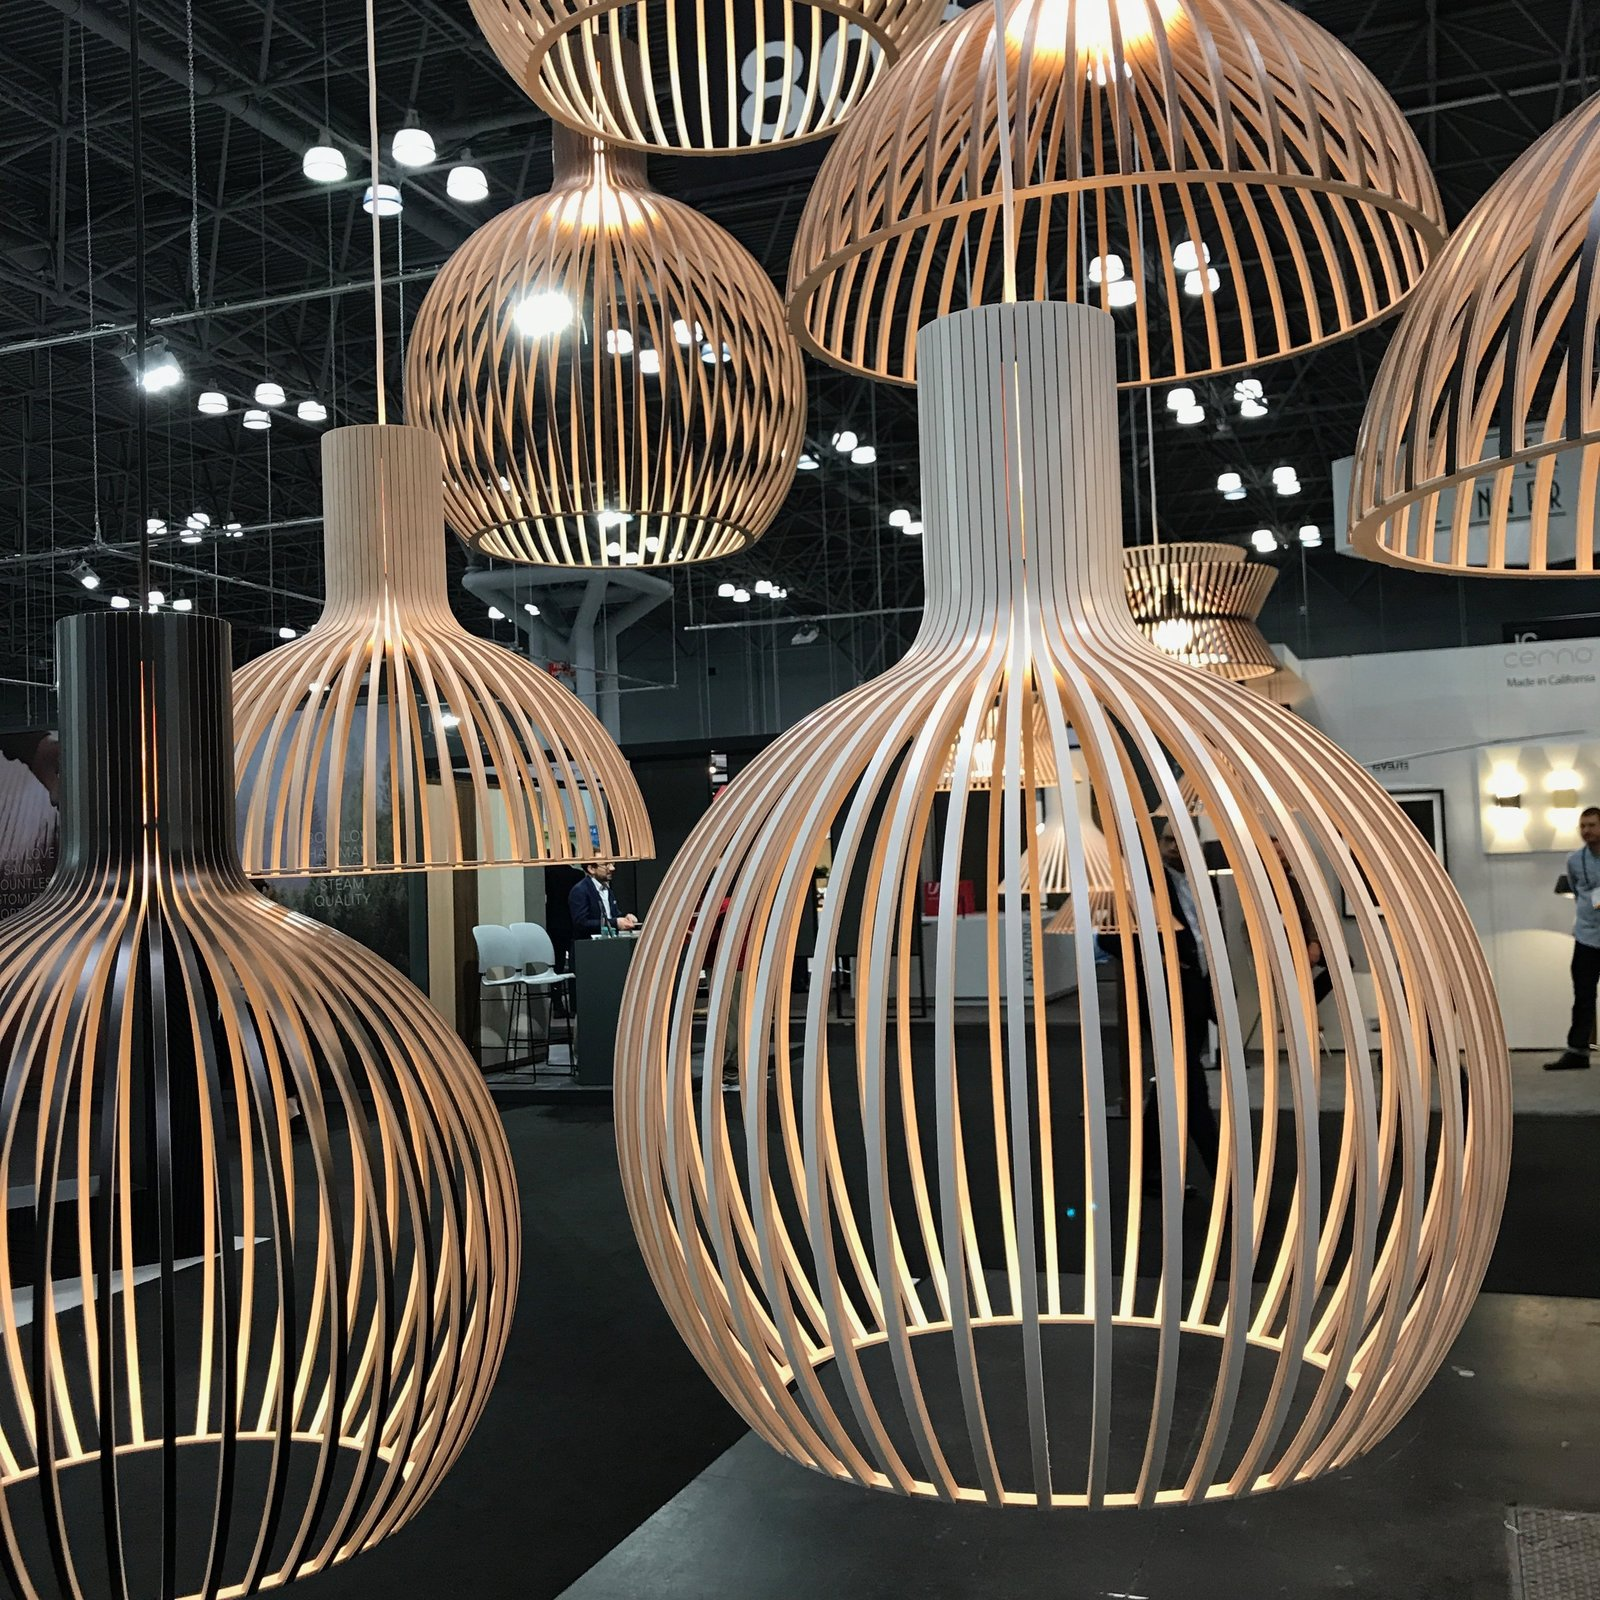 We were happy to see the US reintroduction of Secto Design's line of handcrafted Finnish lighting pieces made of Scandinavian birch. As of this week, the pieces will be stocked and distributed throughout the US via a Wisconsin warehouse. The entire collection is designed by Finnish architect Seppo Koho. The Best of New York Design Week 2017 - Photo 13 of 36